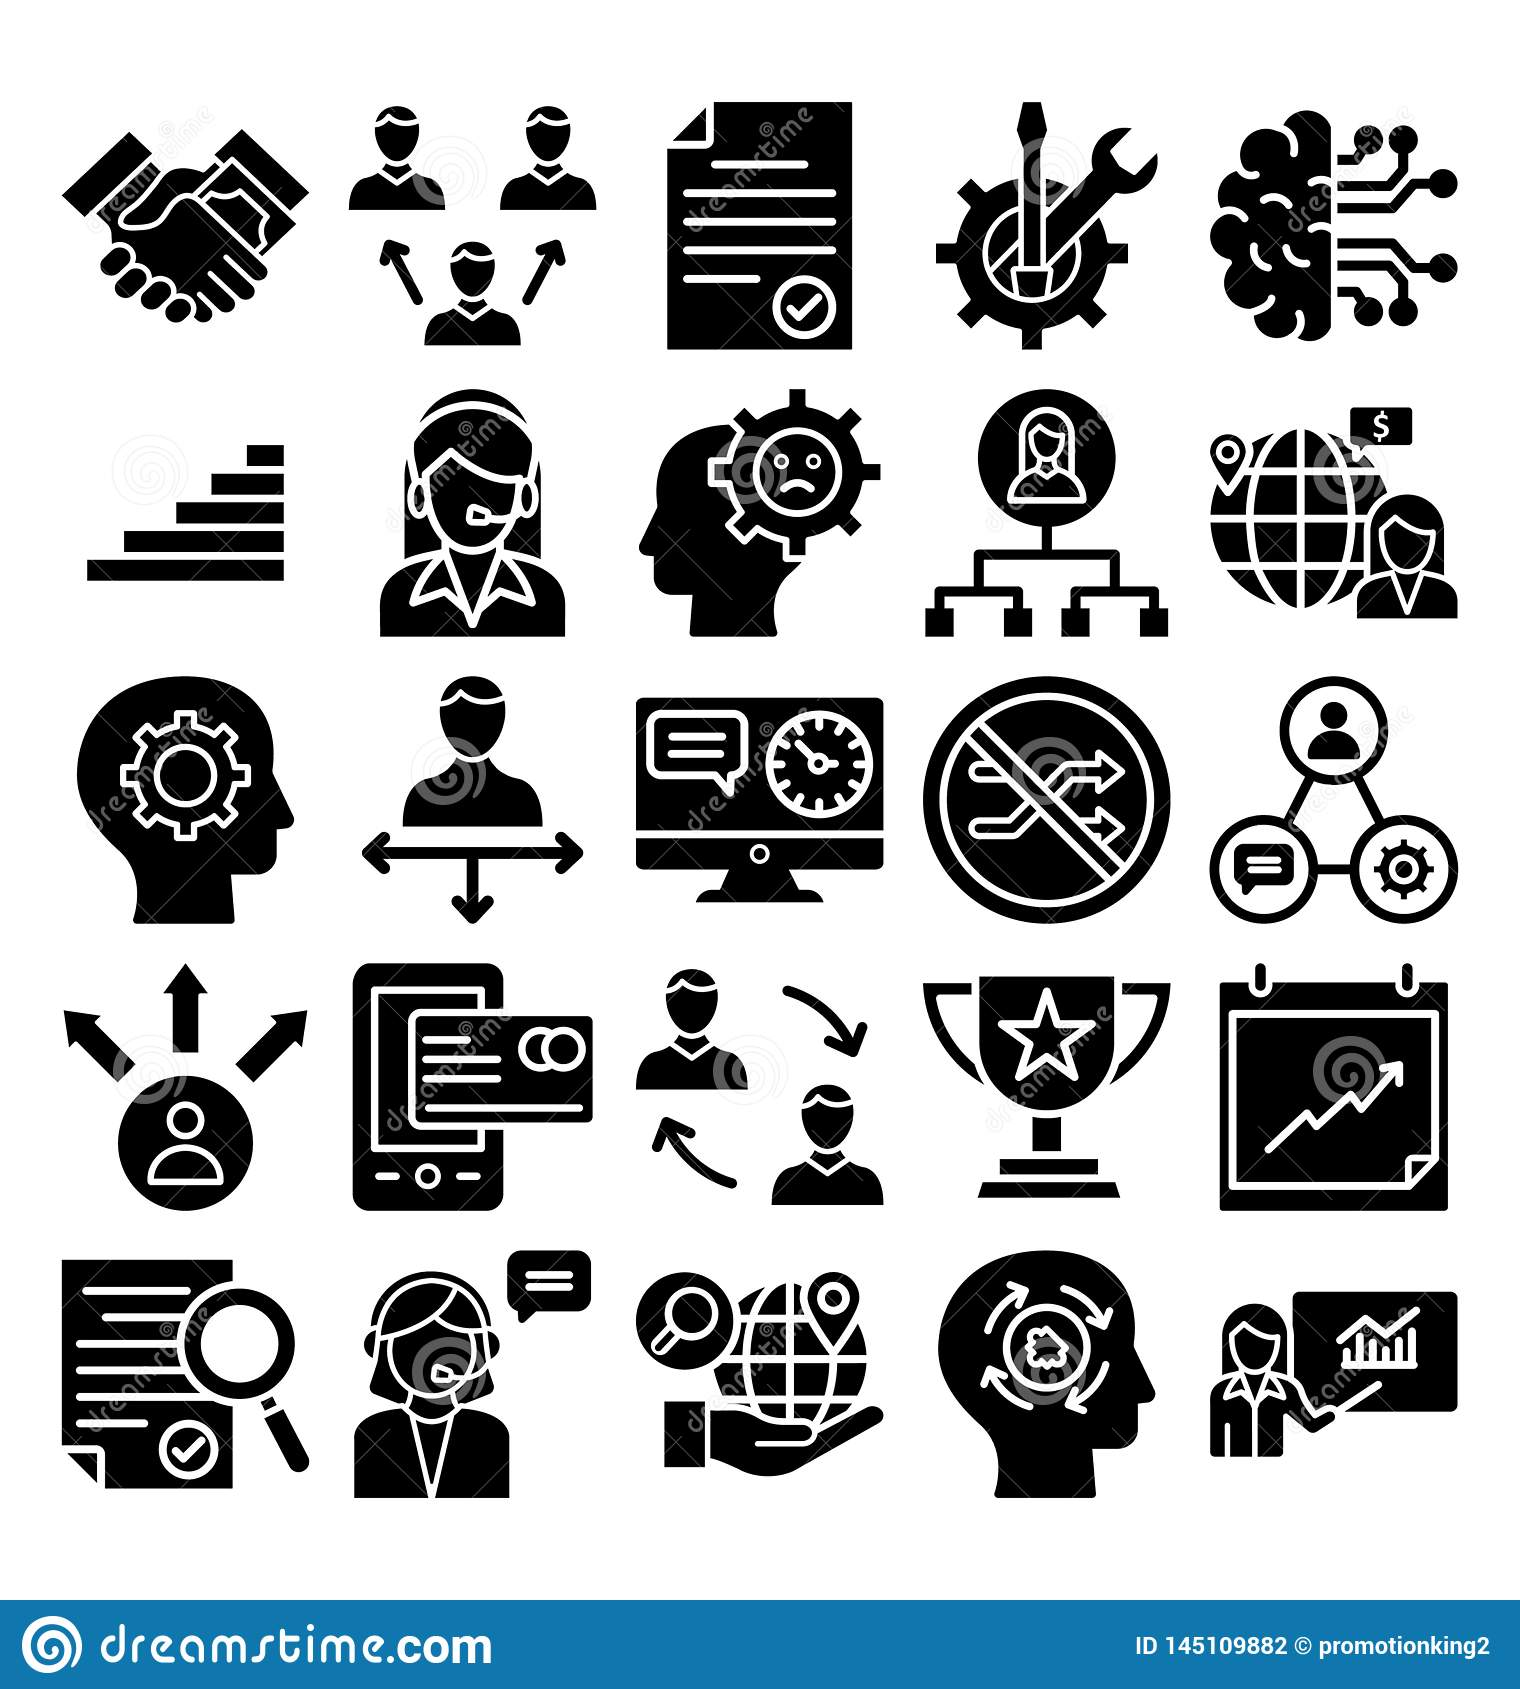 Business Trade Vector Icon editable Business Trade Vector Icon editable